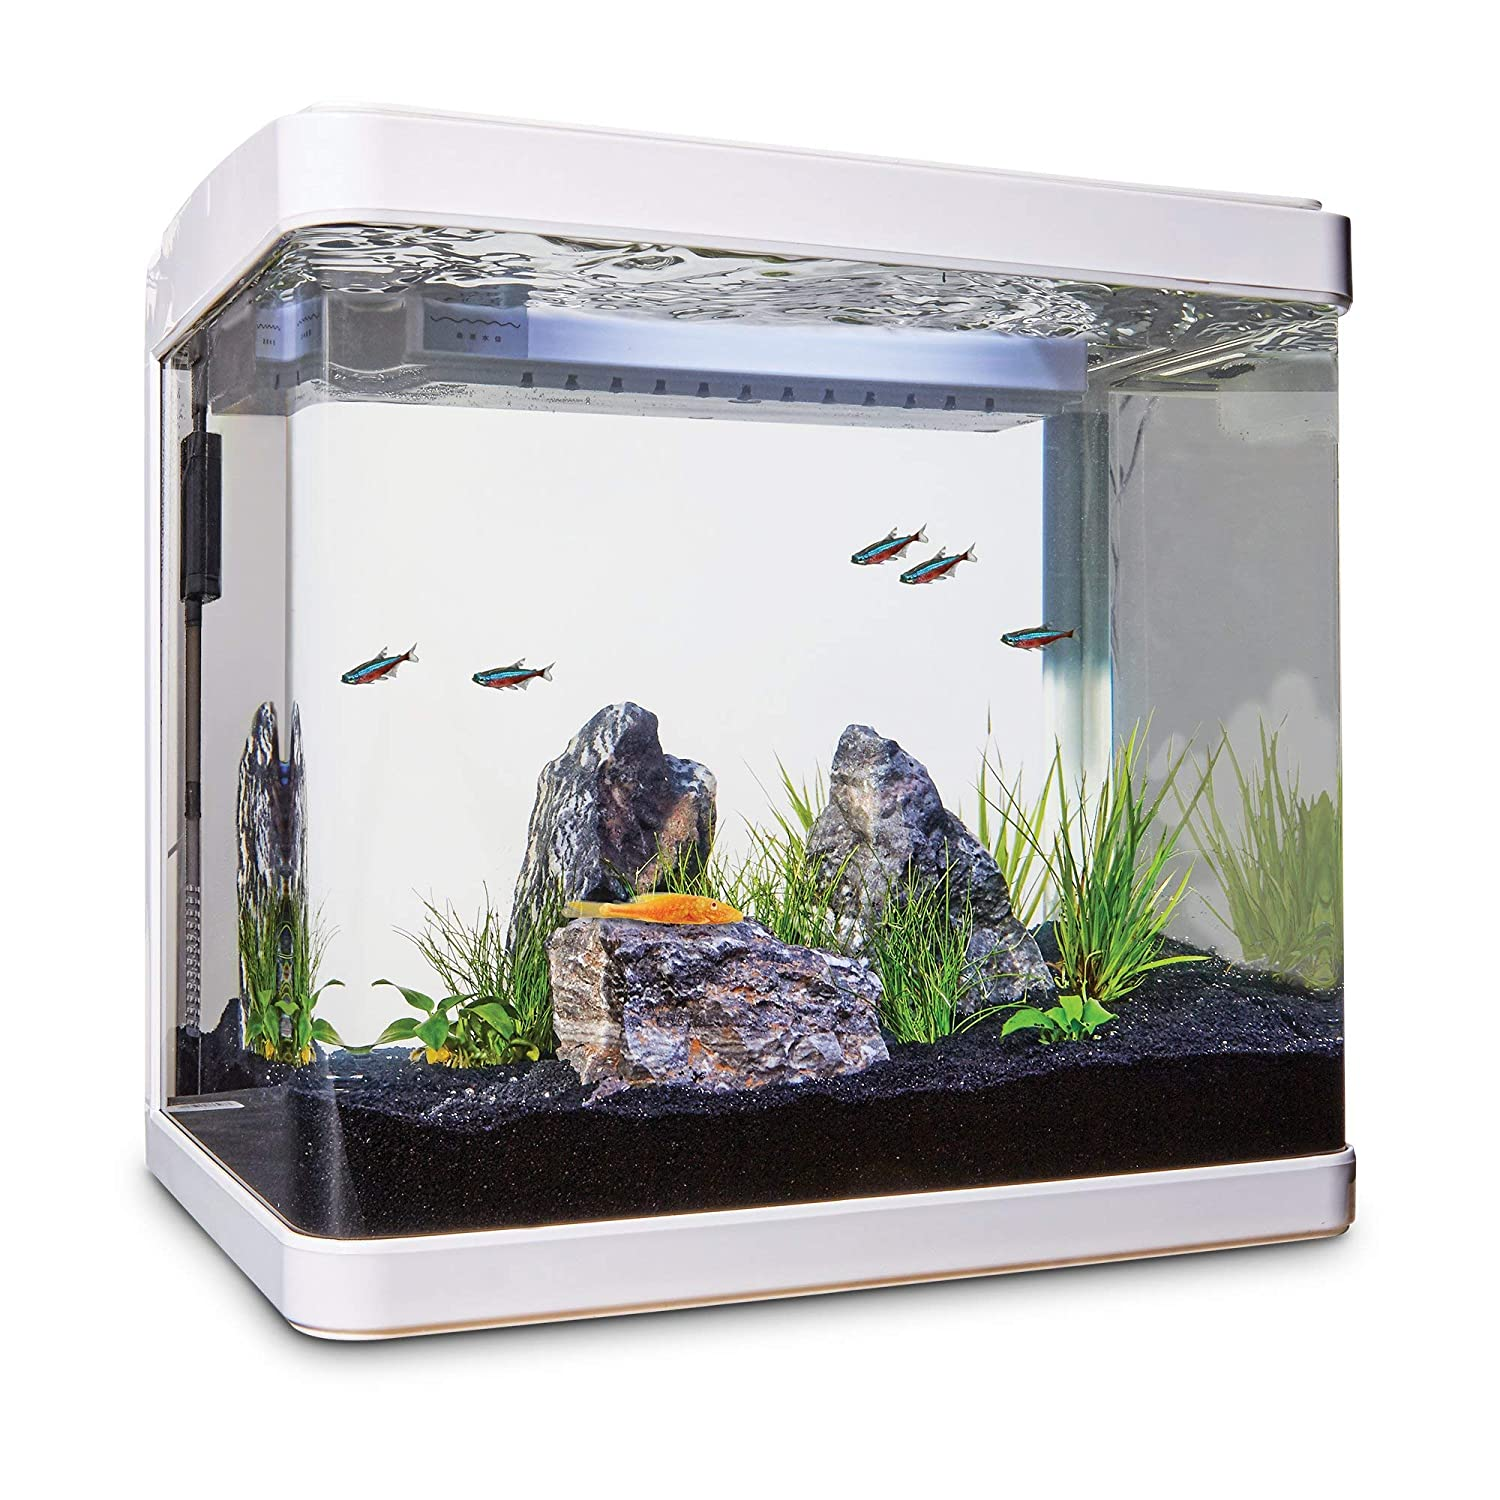 Amazon.com : Imagitarium Freshwater Cube Aquarium Kit, 5.2 GAL : Pet Supplies